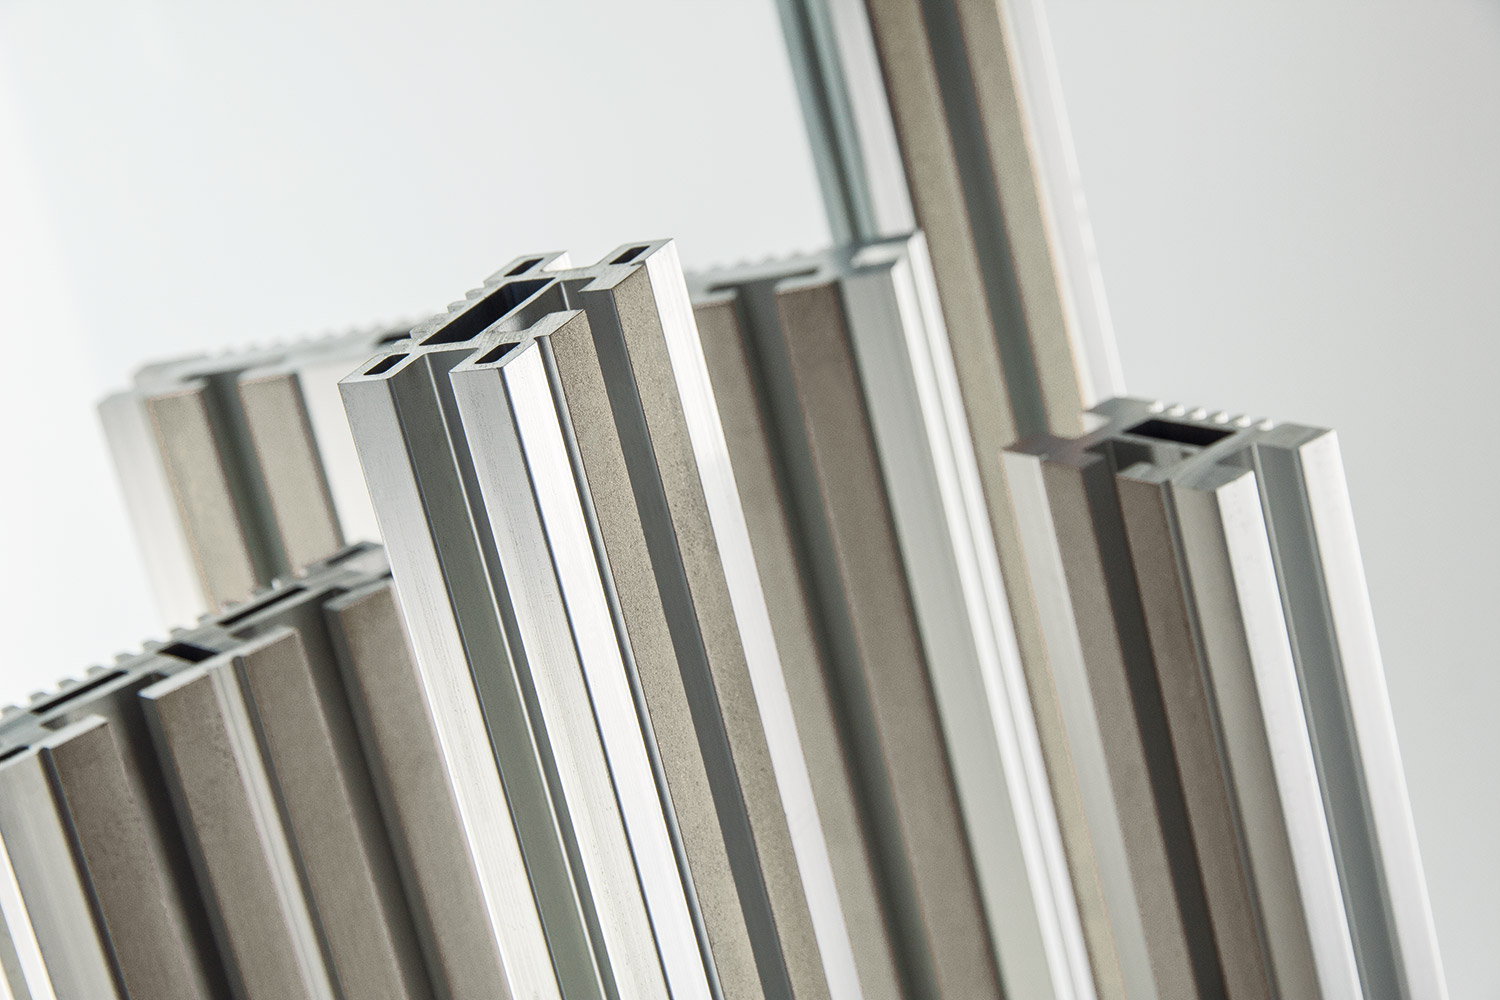 SMART-ENERGY PLUS <br> UNIVERSAL ALUMINIUM BUSBAR SYSTEMS UP TO 6300A